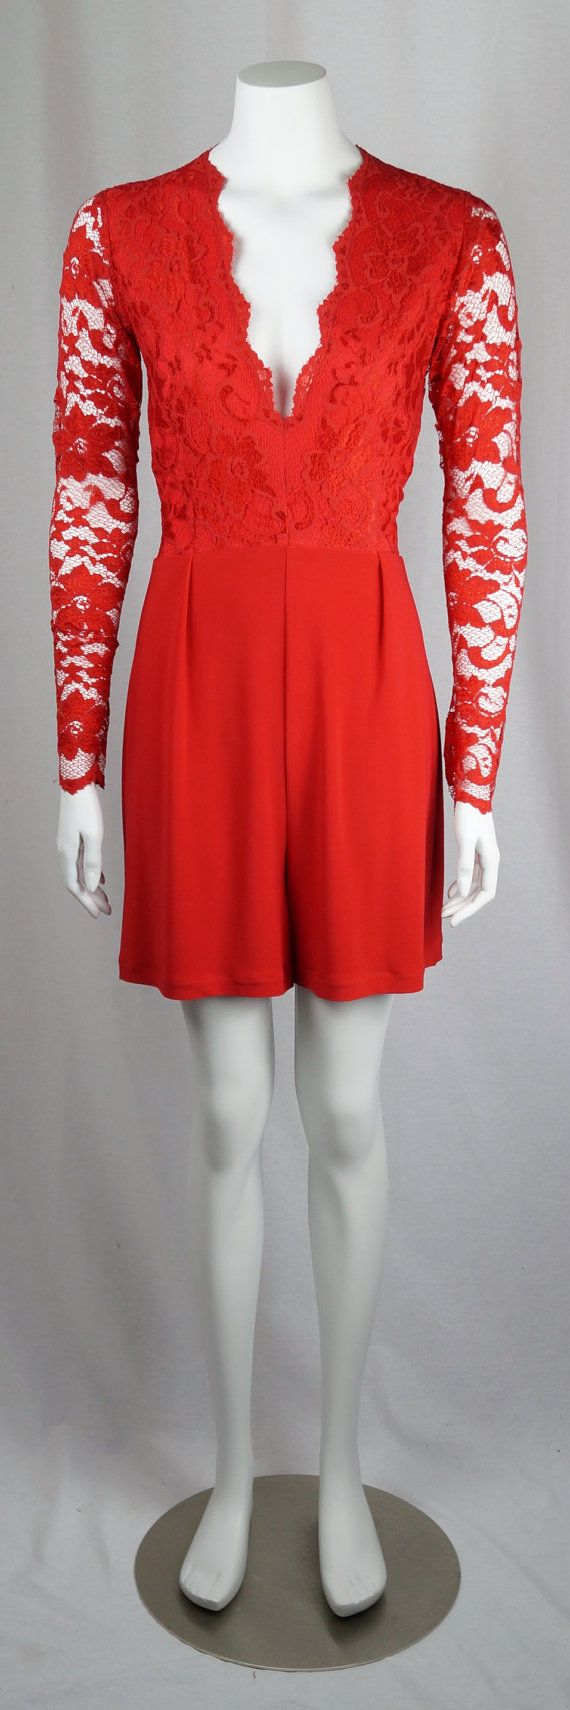 Baylis & Knight Red LACE Long Sleeve Low Cut by BaylisandKnight